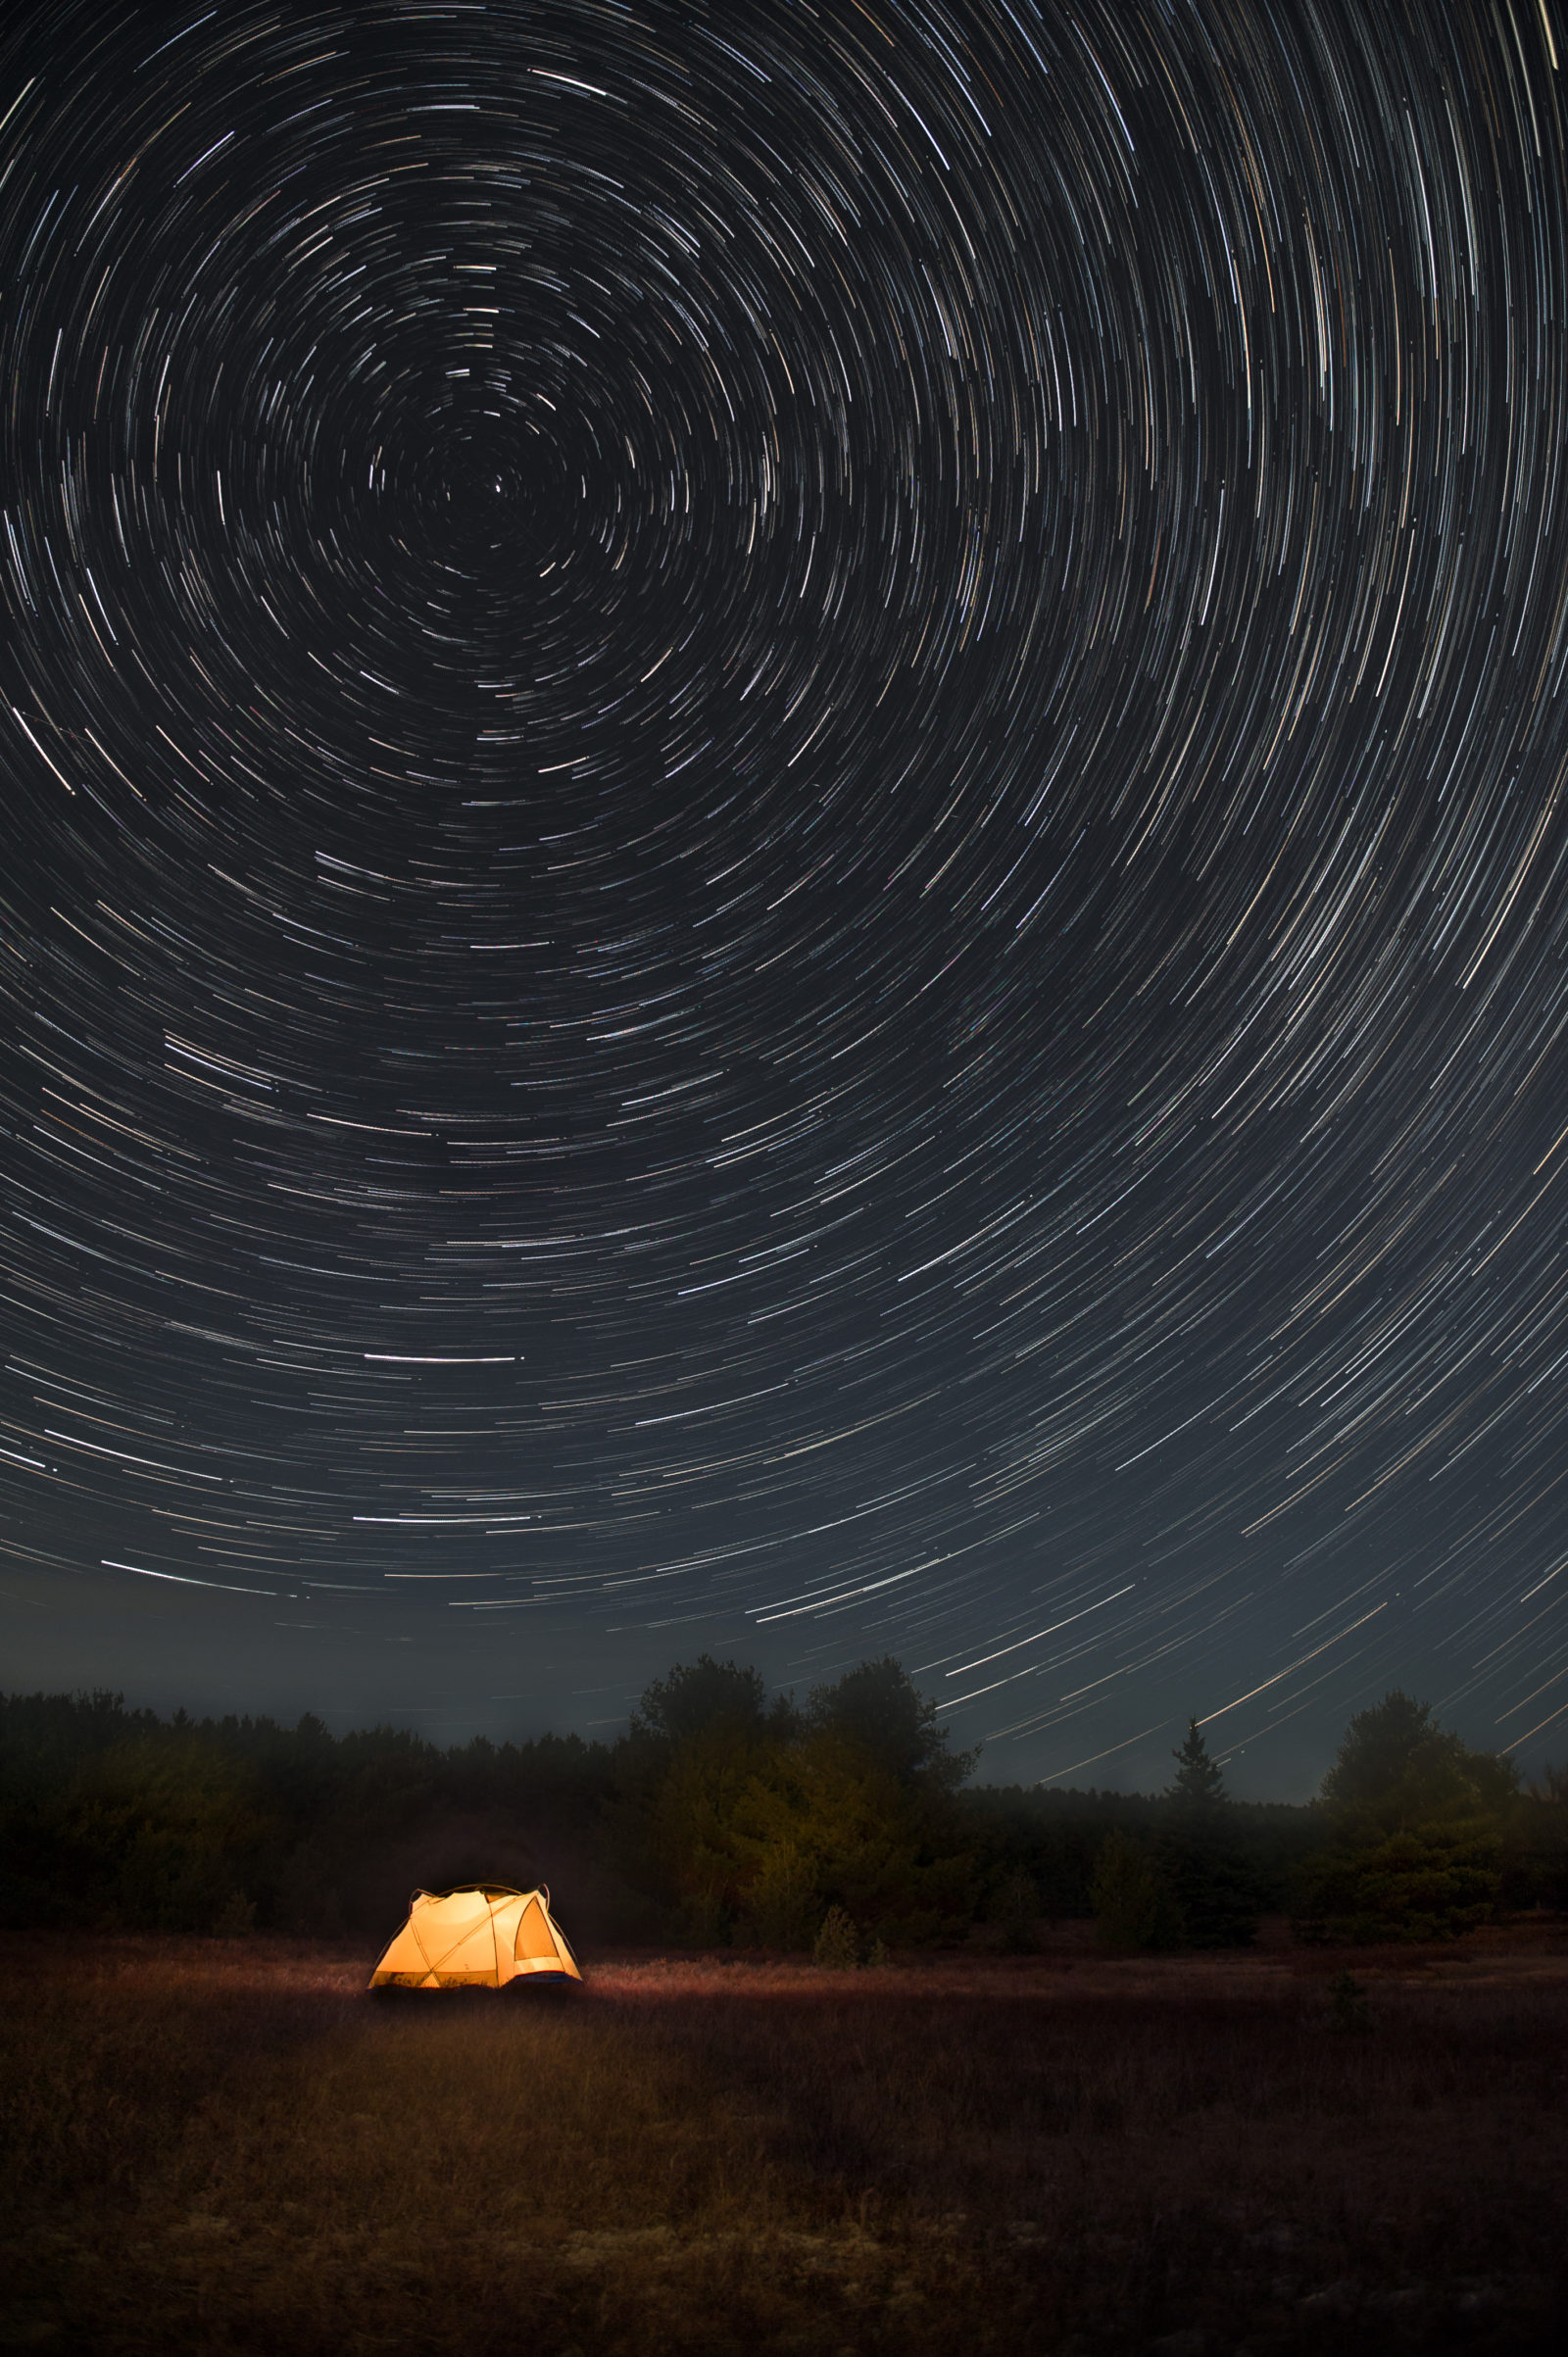 Star Trails Over a Glowing Tent